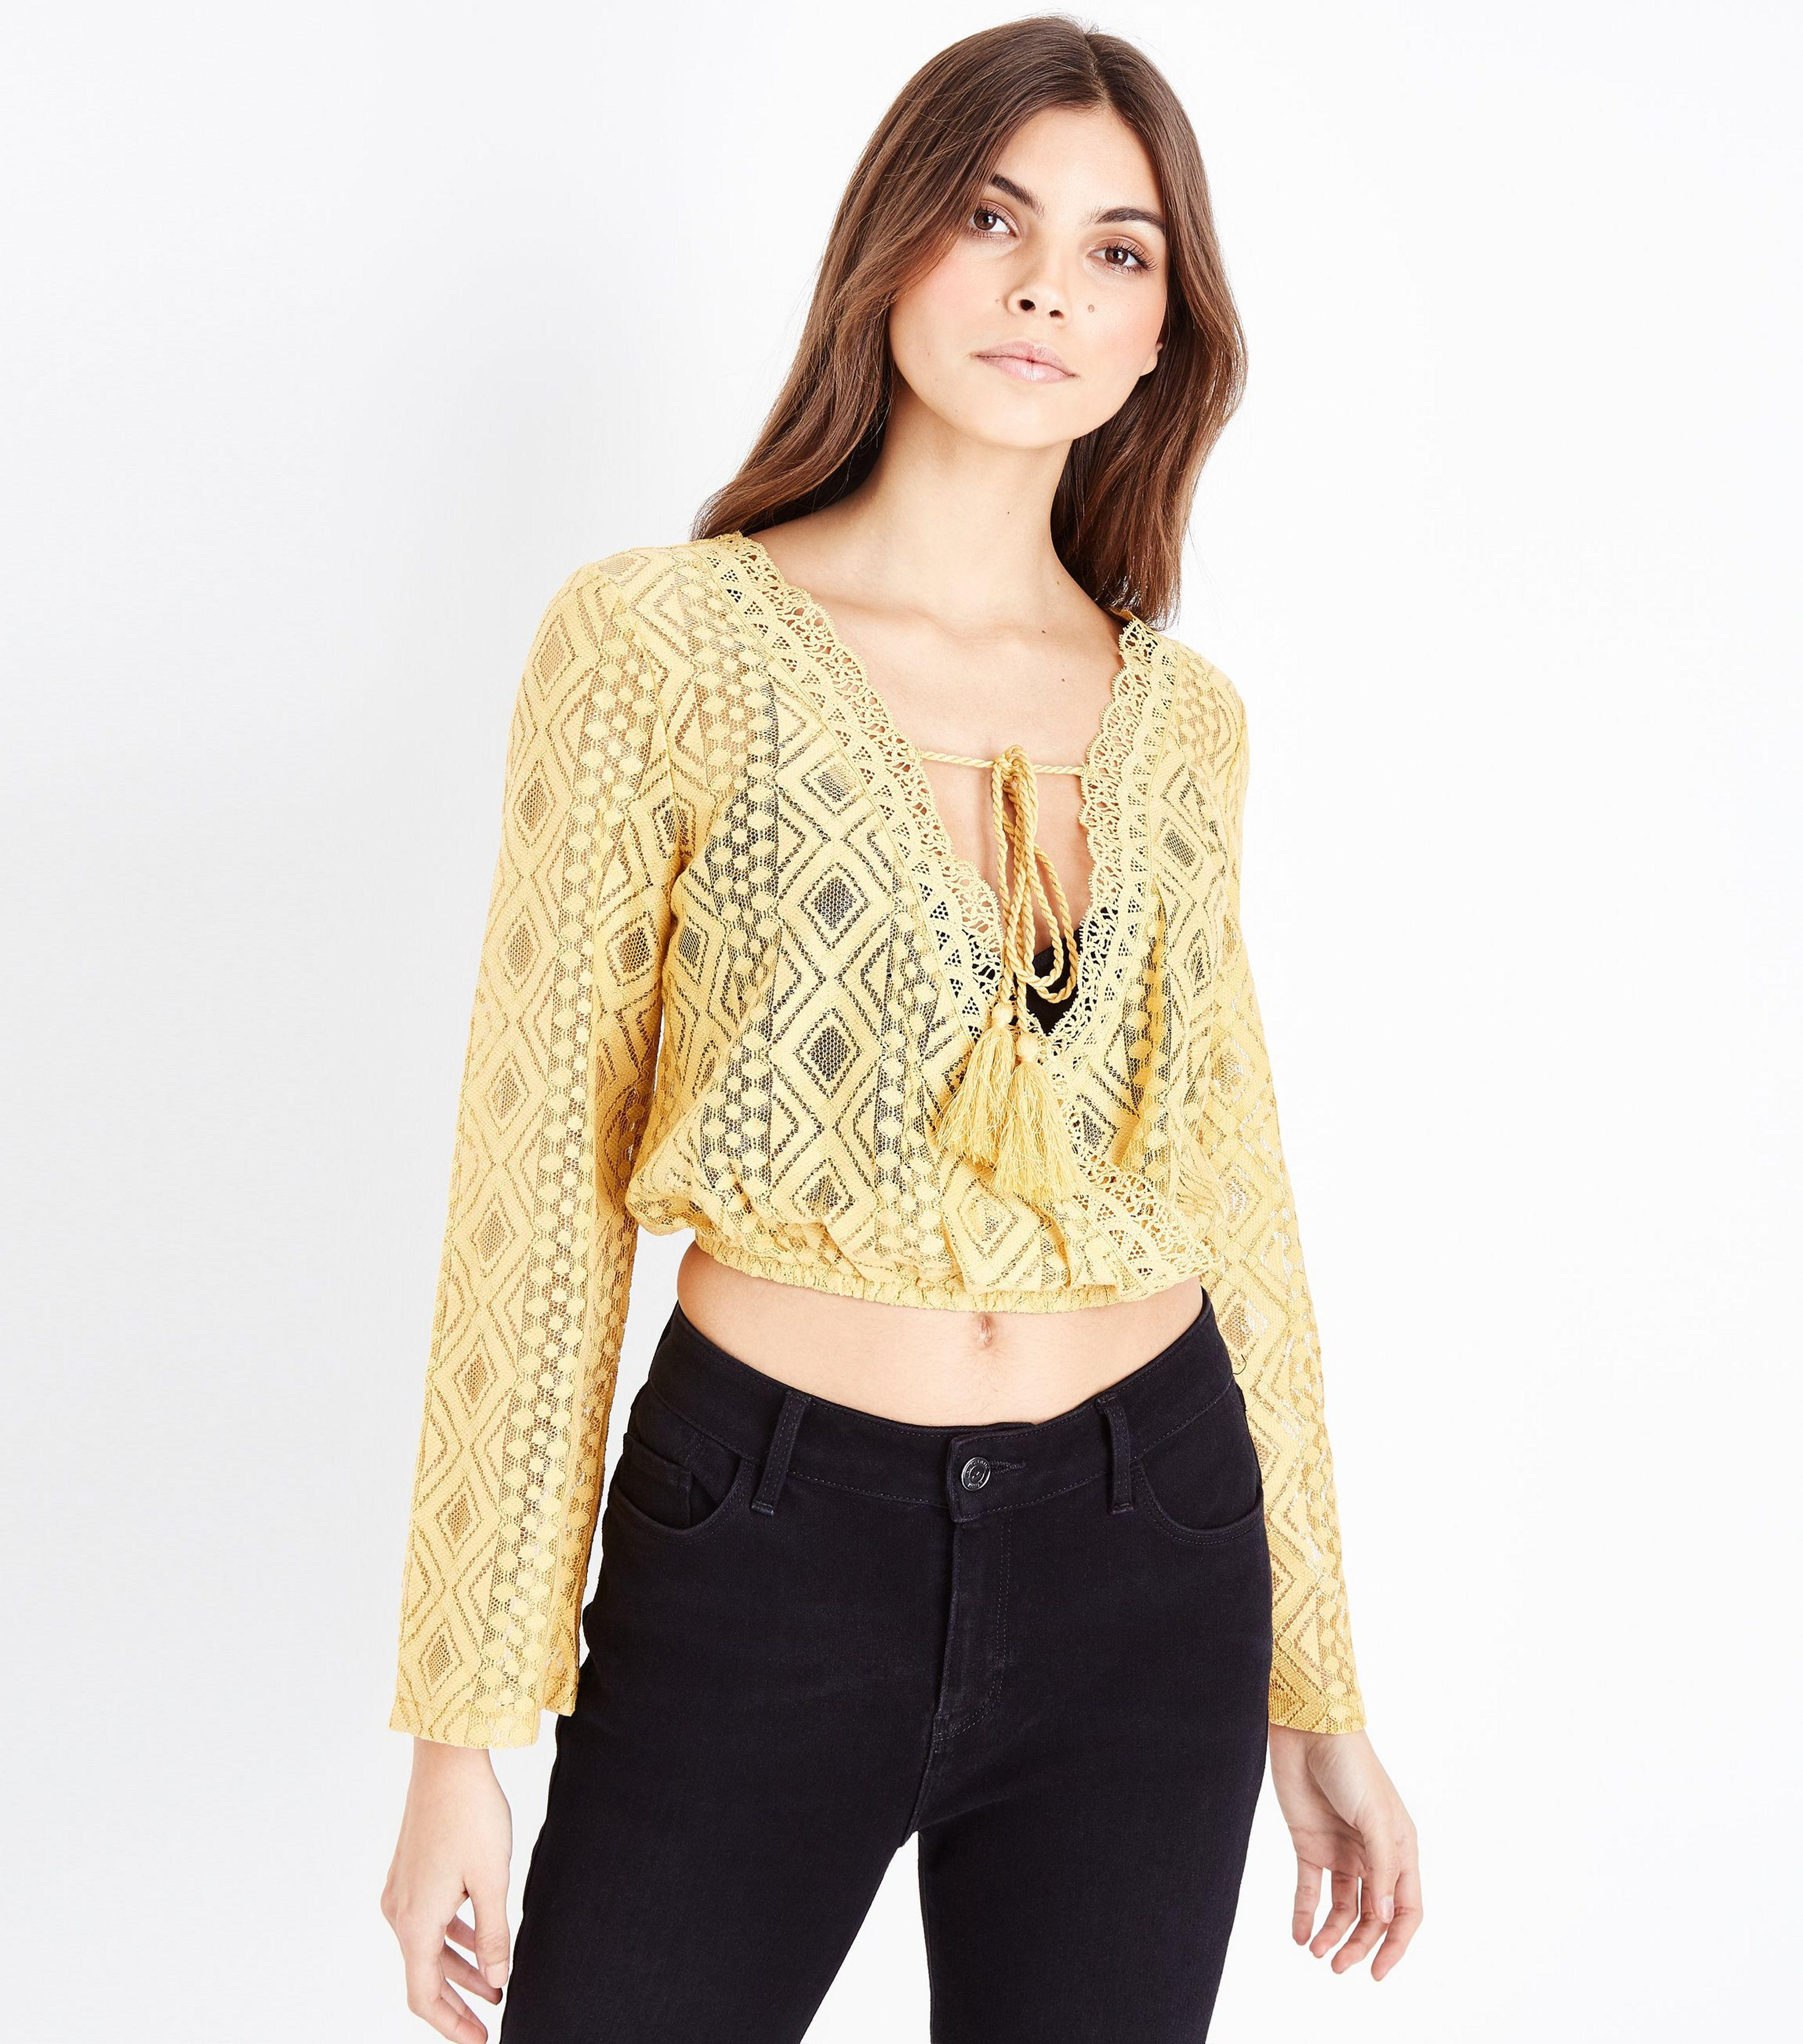 Free Shipping Big Sale New Look Lace Tassel Front Crop Top High Quality Sale Online vDmxwU8YNS